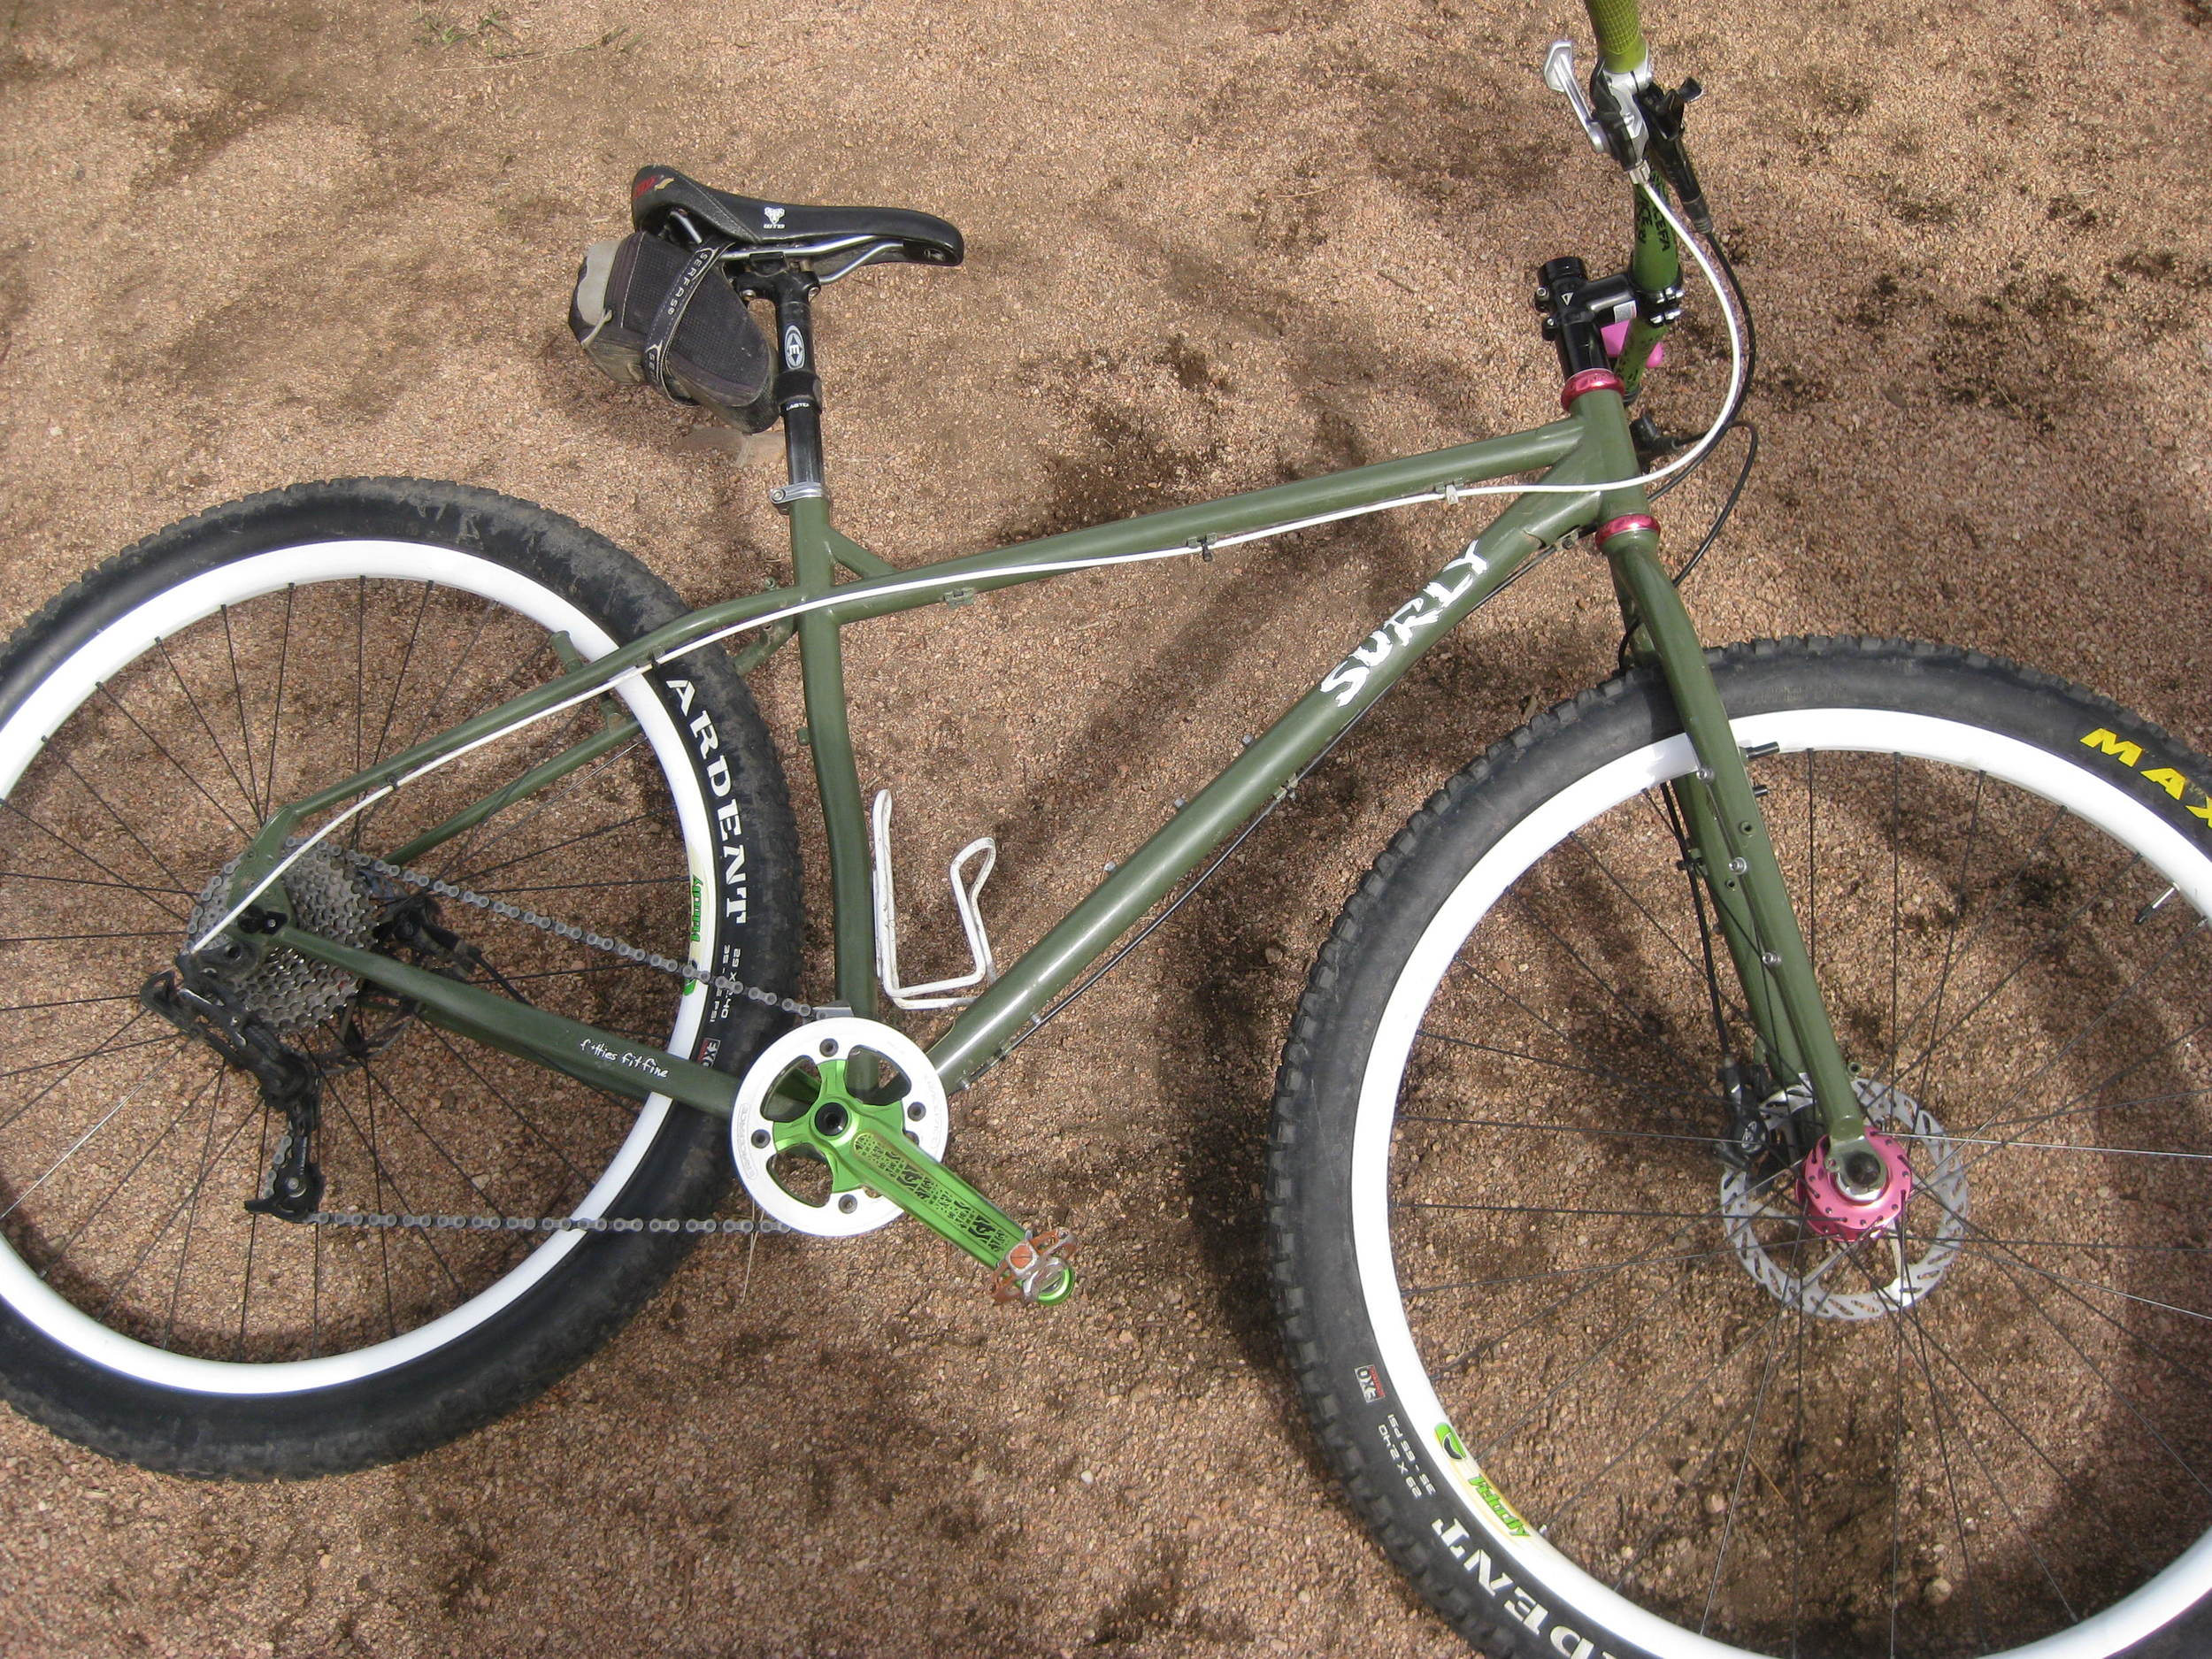 Levi's Surly Ogre (click photo to read more)